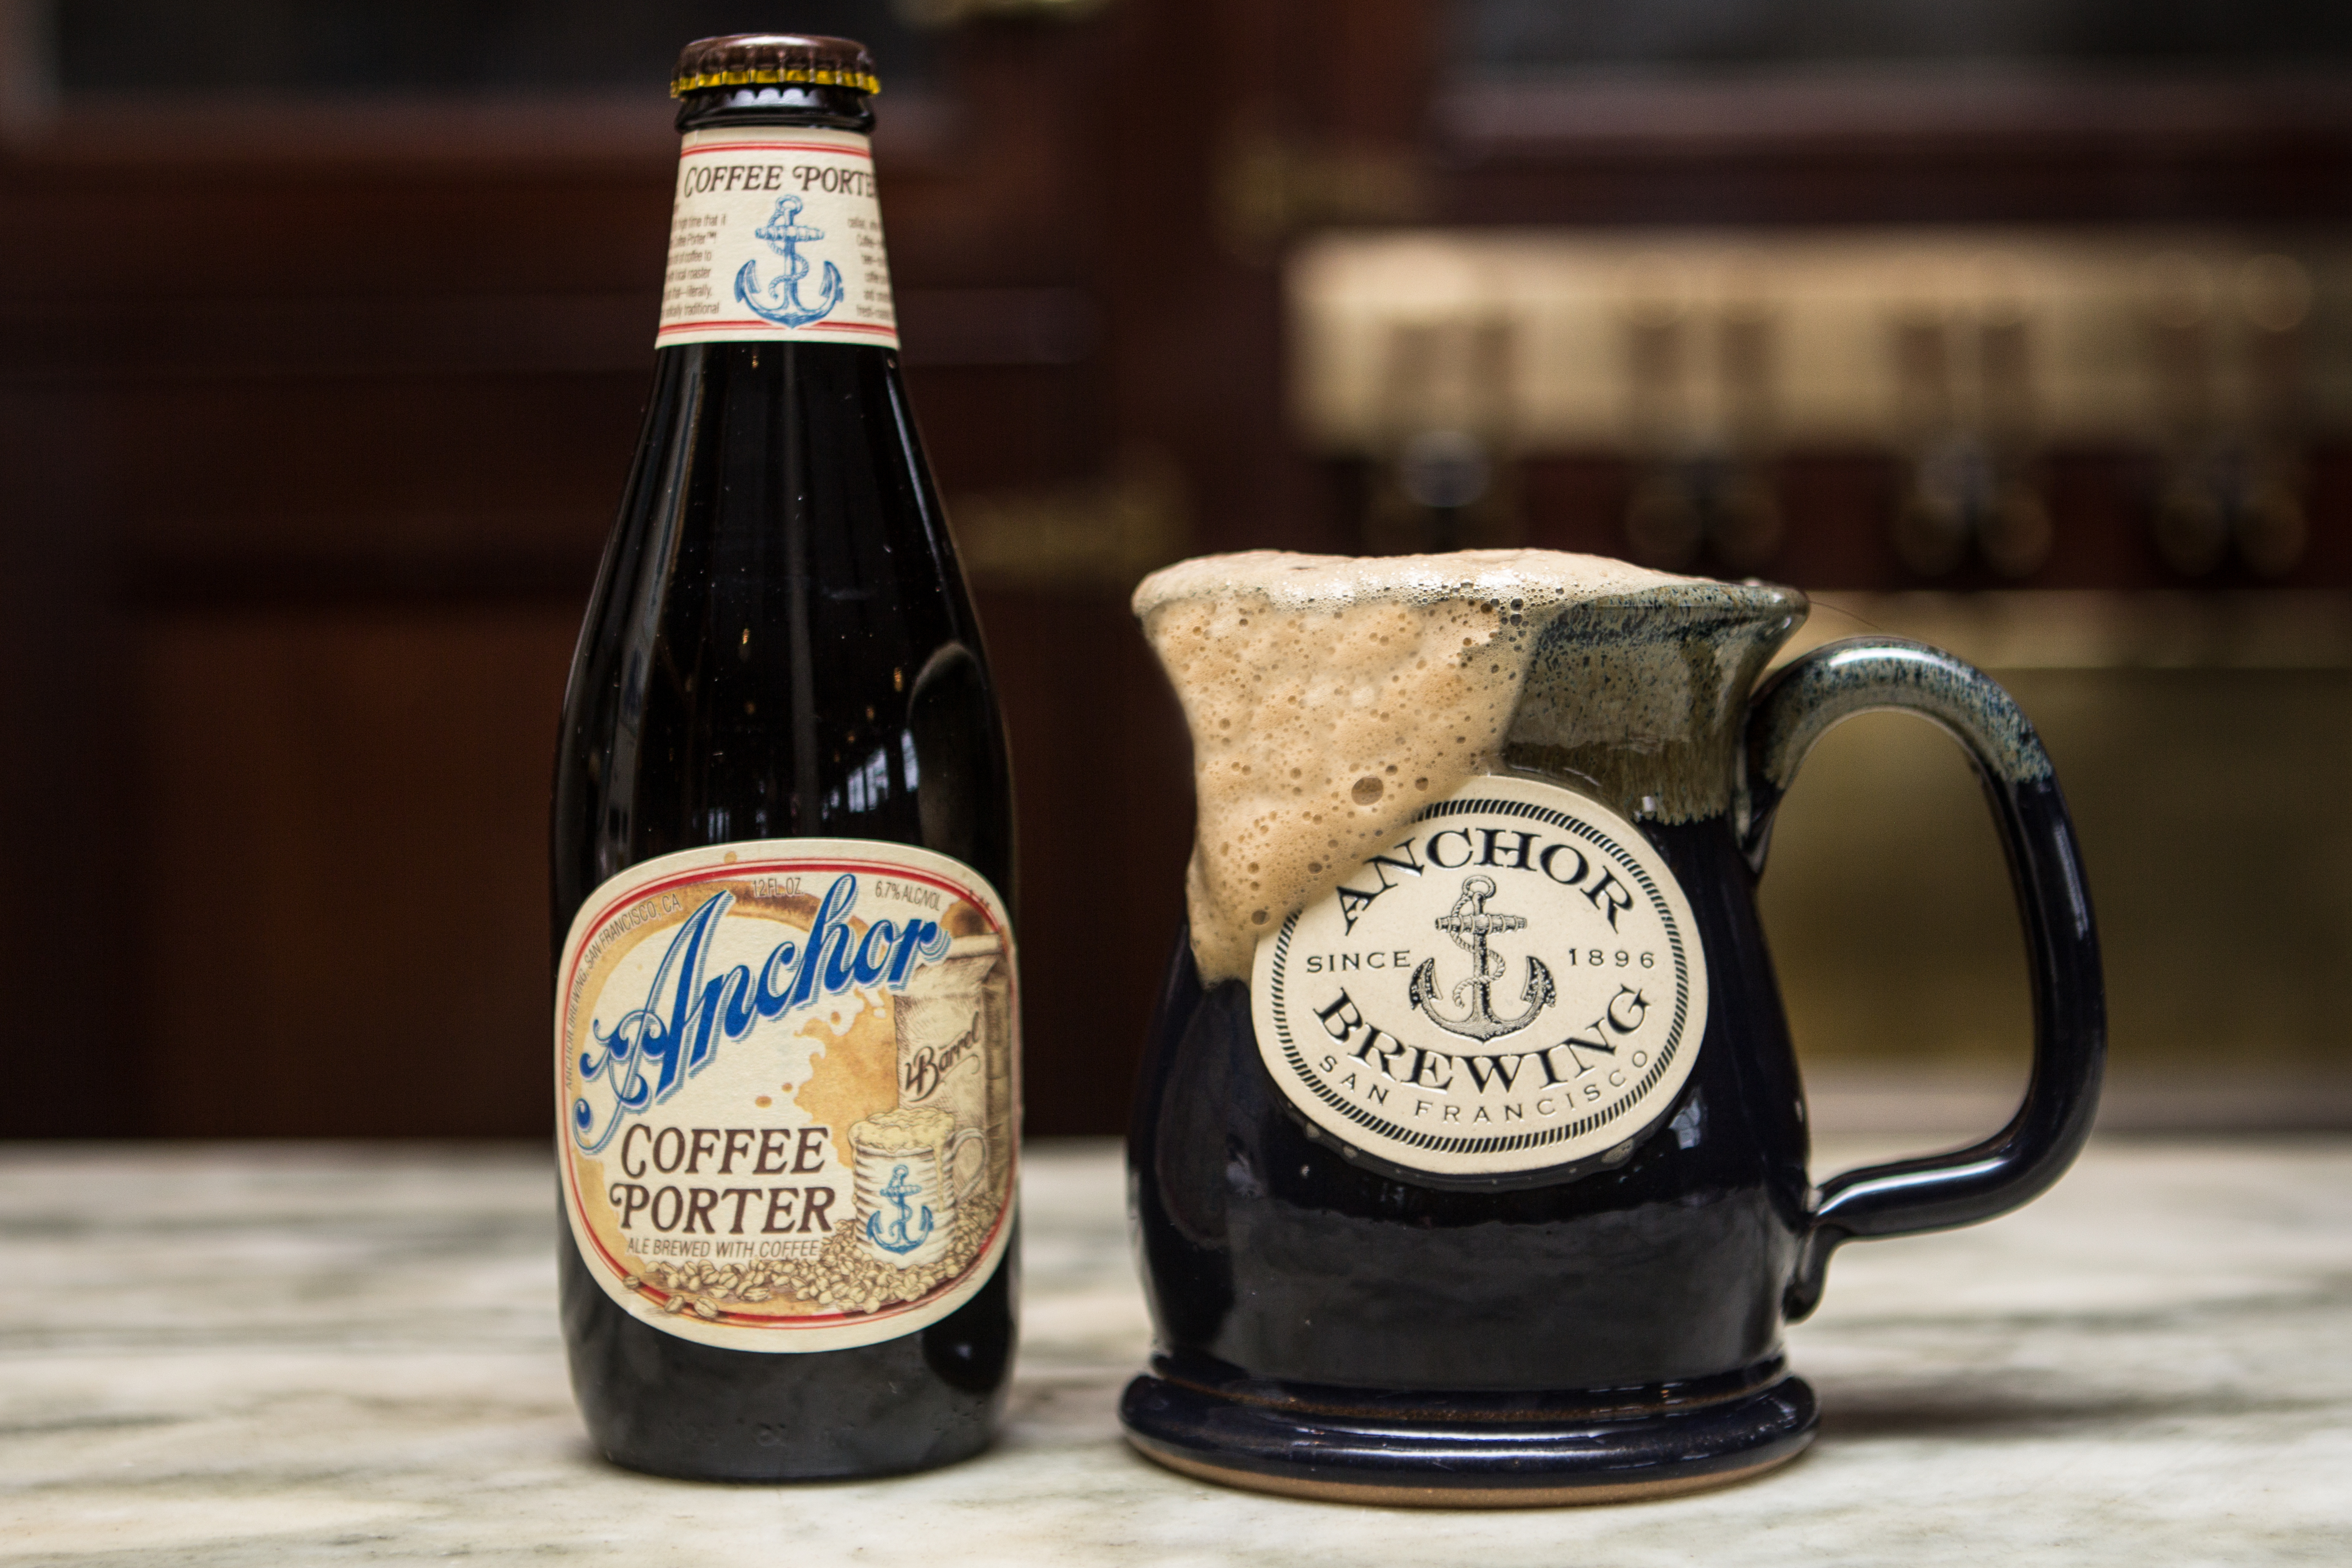 Anchor Brewing Announces Energetic New Coffee Porter